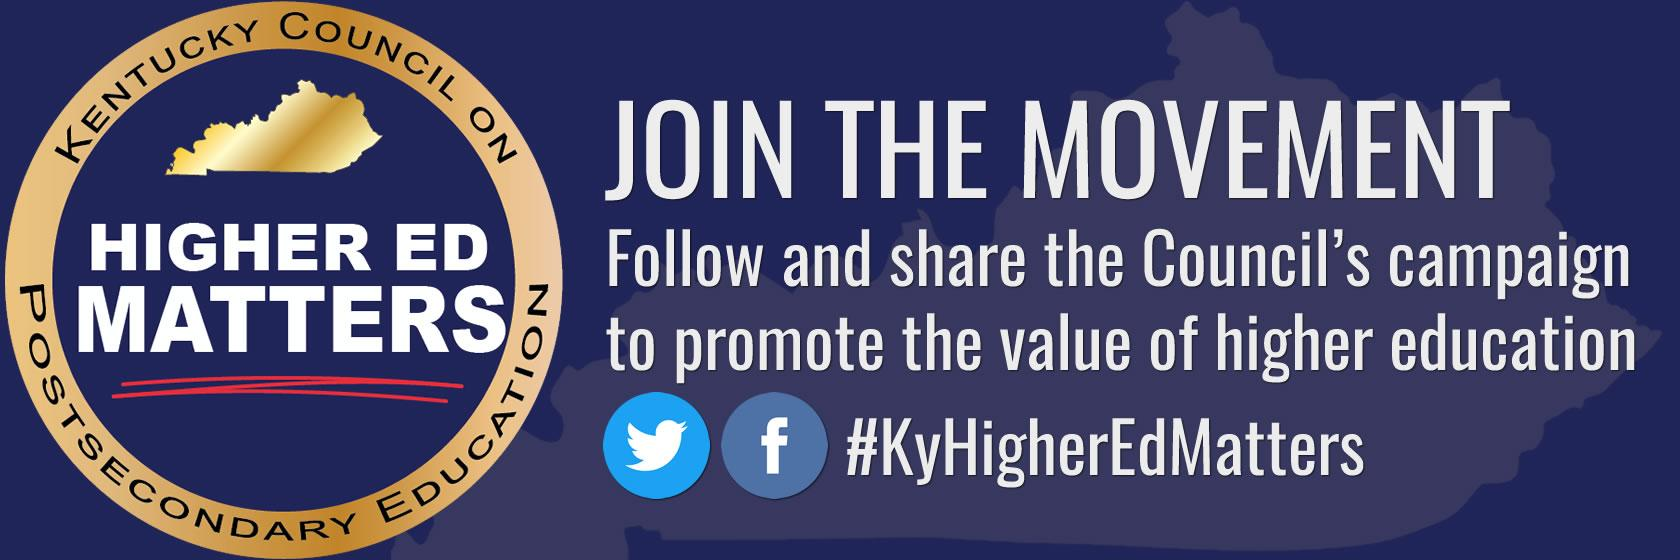 Follow the Council and the #KyHigherEdMatters campaign on Twitter.